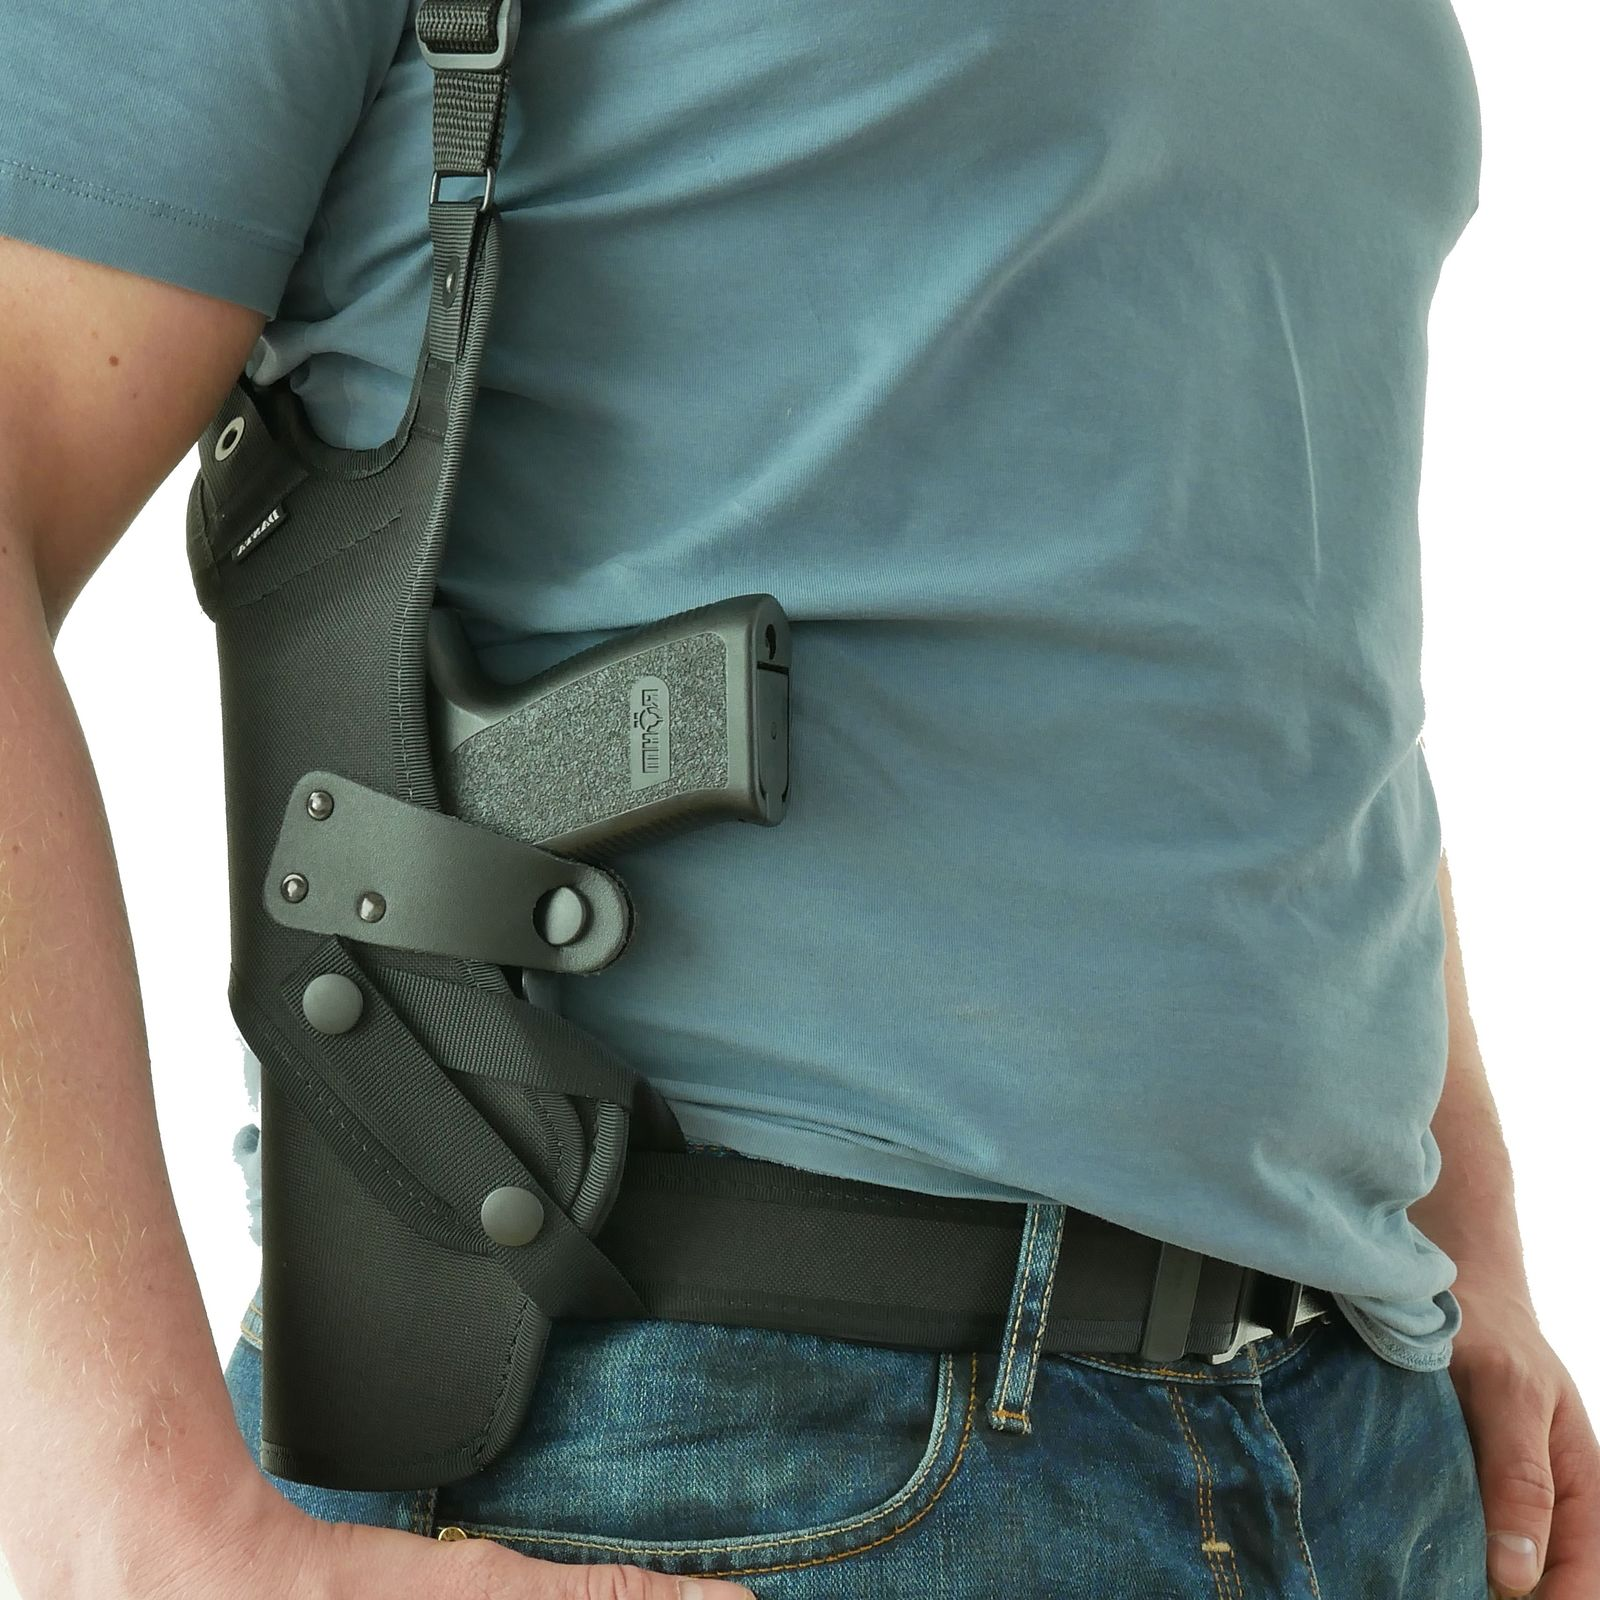 CZ Full Size Thumb-Brake Shoulder Holster w/ One Shoulder Rig